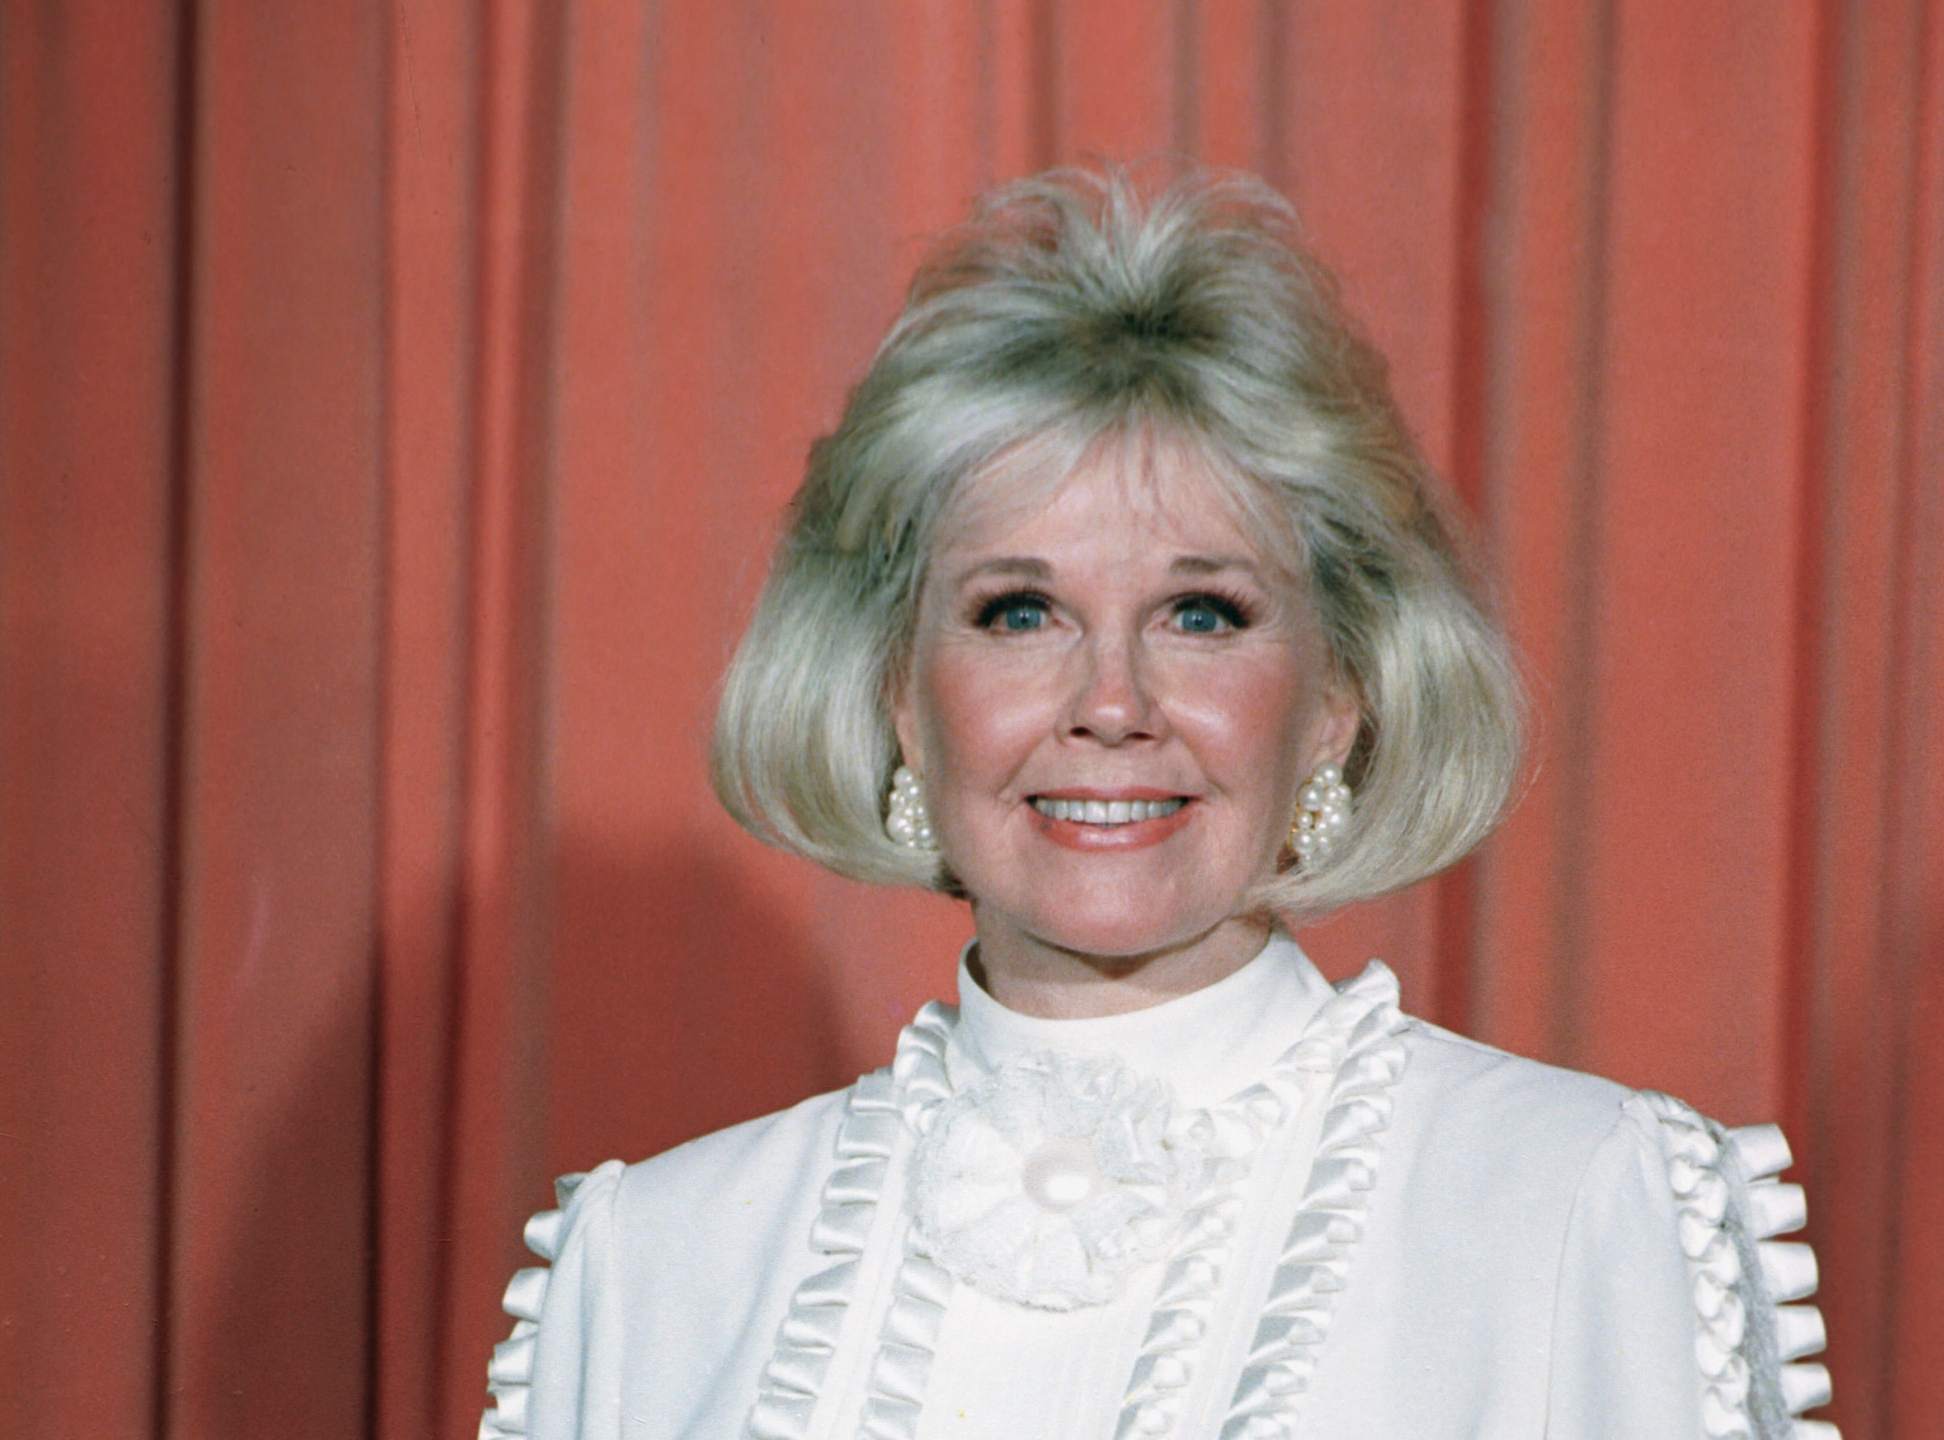 Obit_Doris_Day_81242-159532.jpg52354897